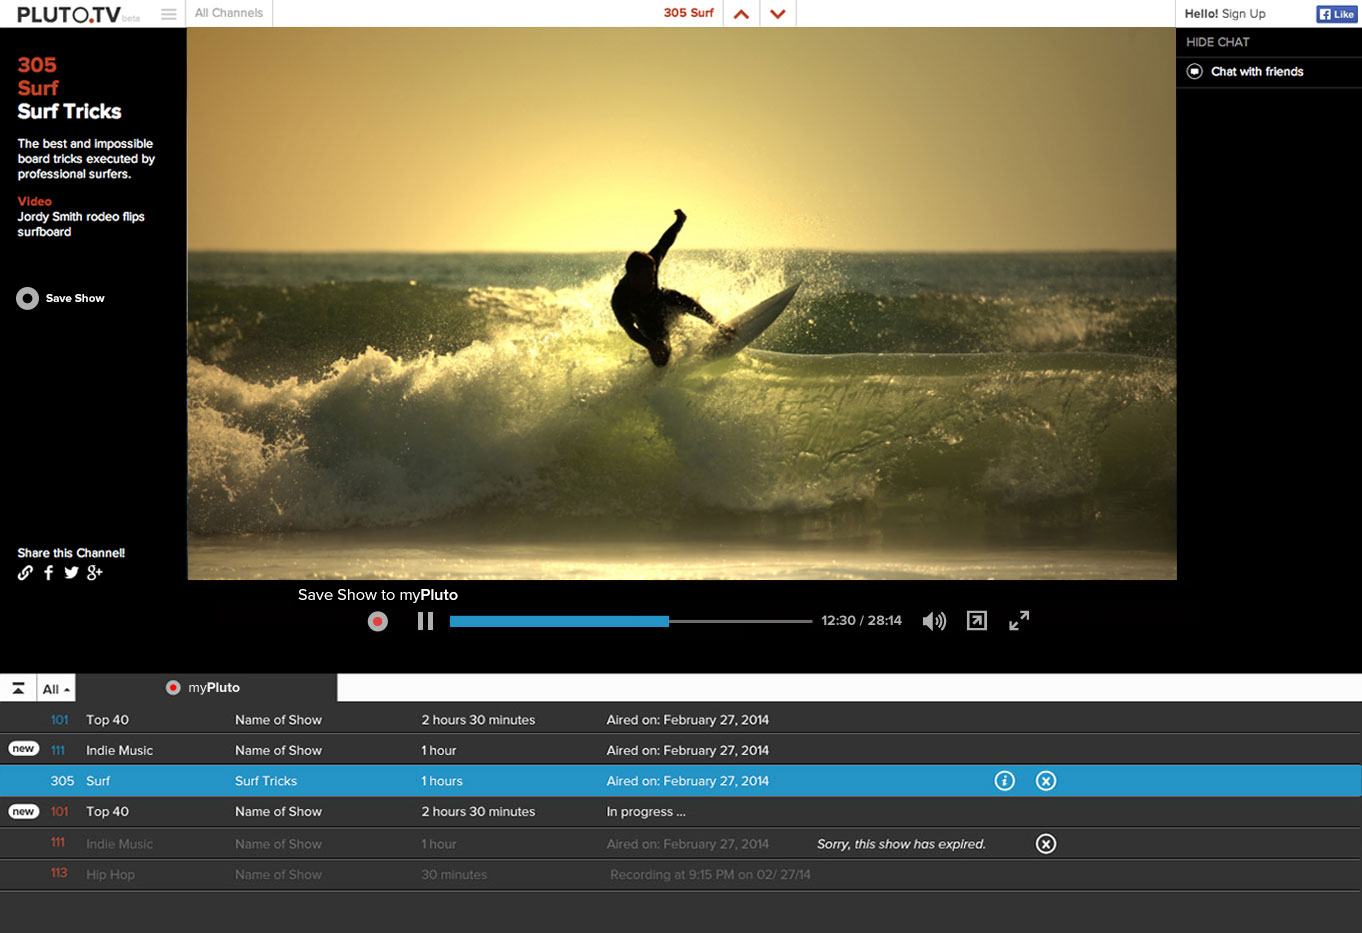 Web TV Service Pluto.TV Adds a DVR Feature